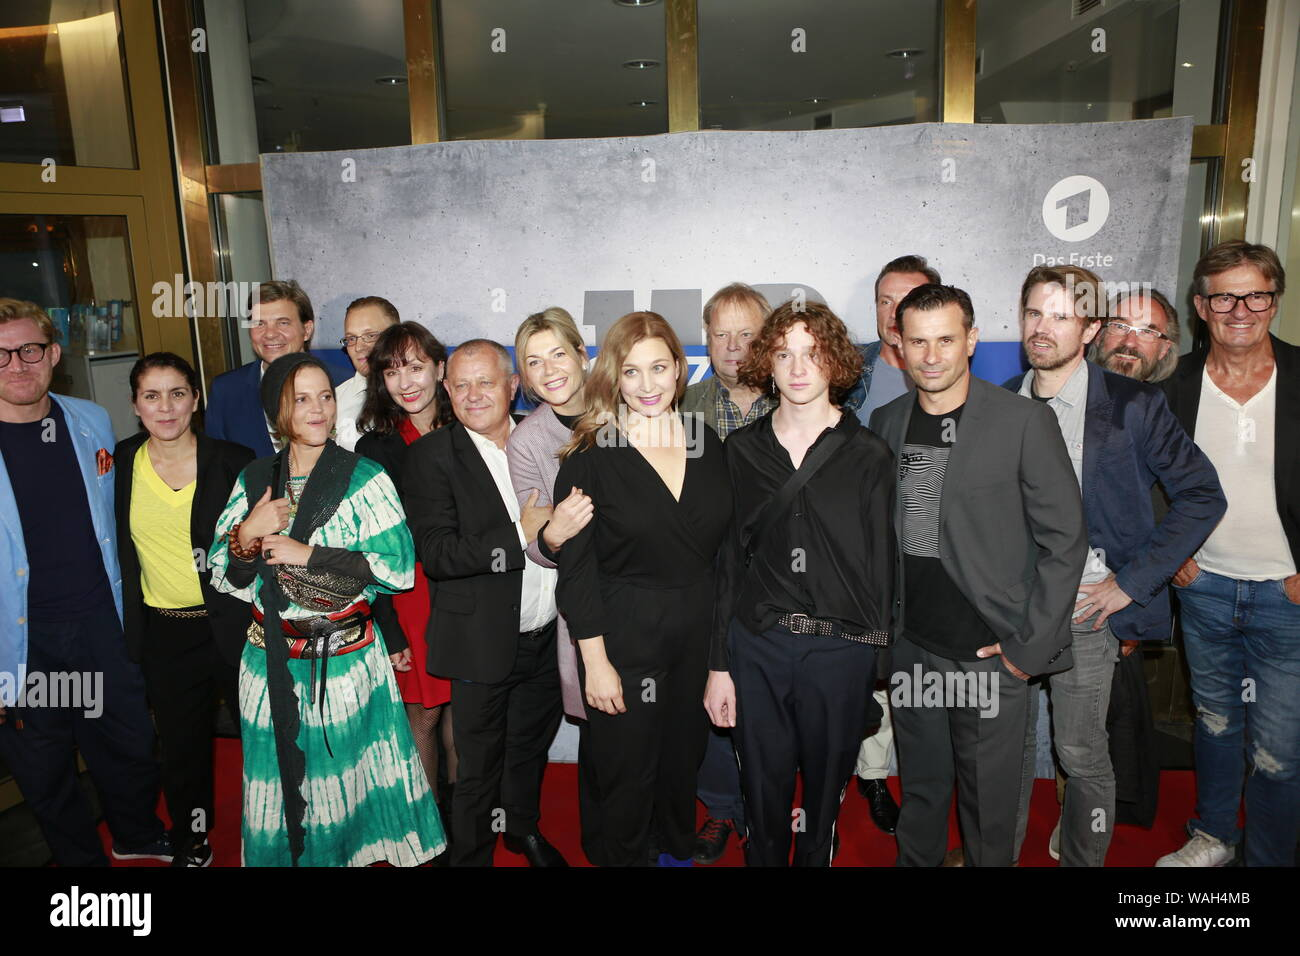 08/20/2019, Berlin, Germany.the Filmcrew at the Preview of the new rbb police call 110: Heimatliebe on Kurfürstendamm in Berlin-Charlottenburg. Stock Photo